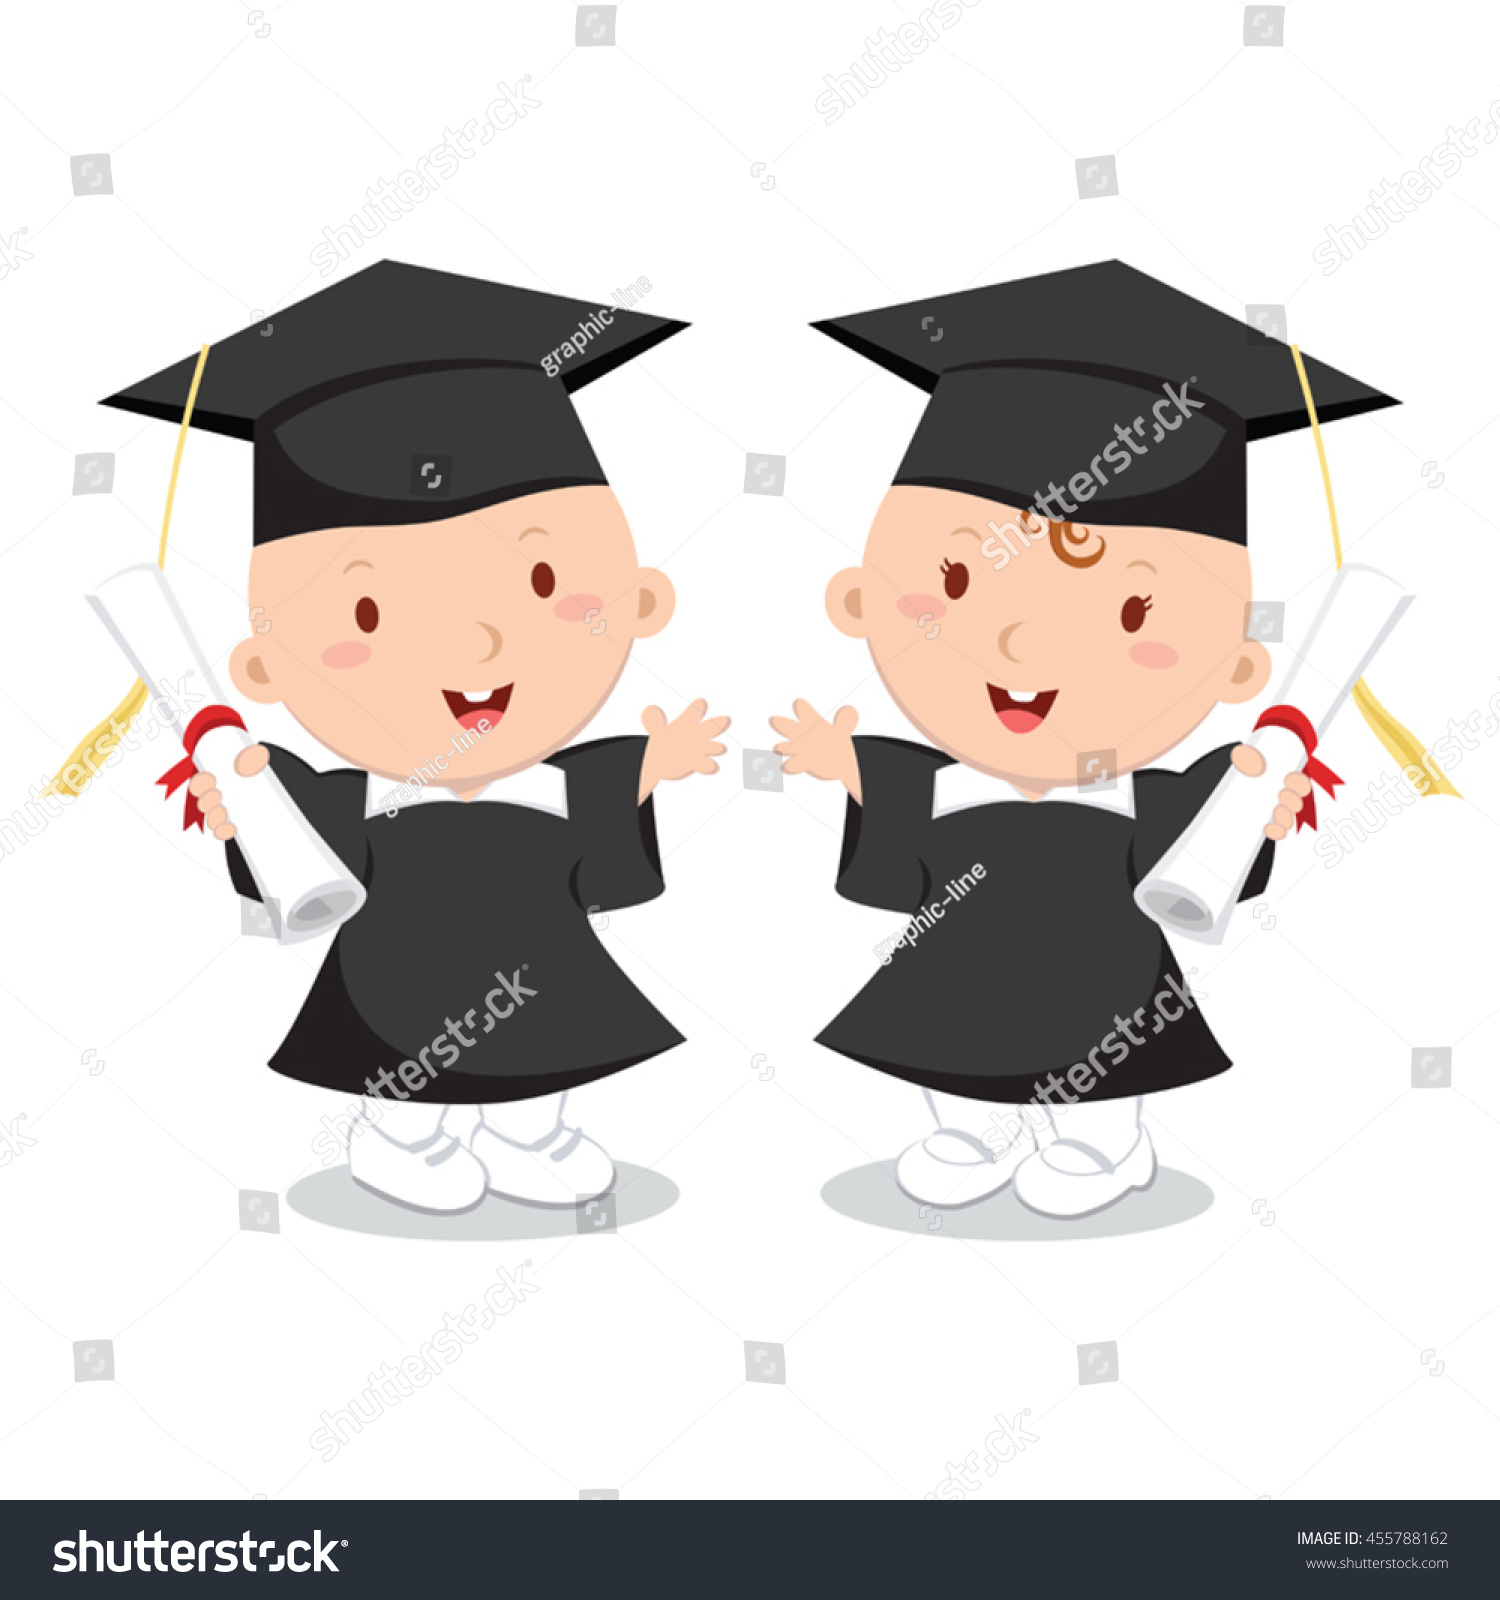 Baby Boy Girl Wearing Graduation Gown Stock Vector (Royalty Free ...